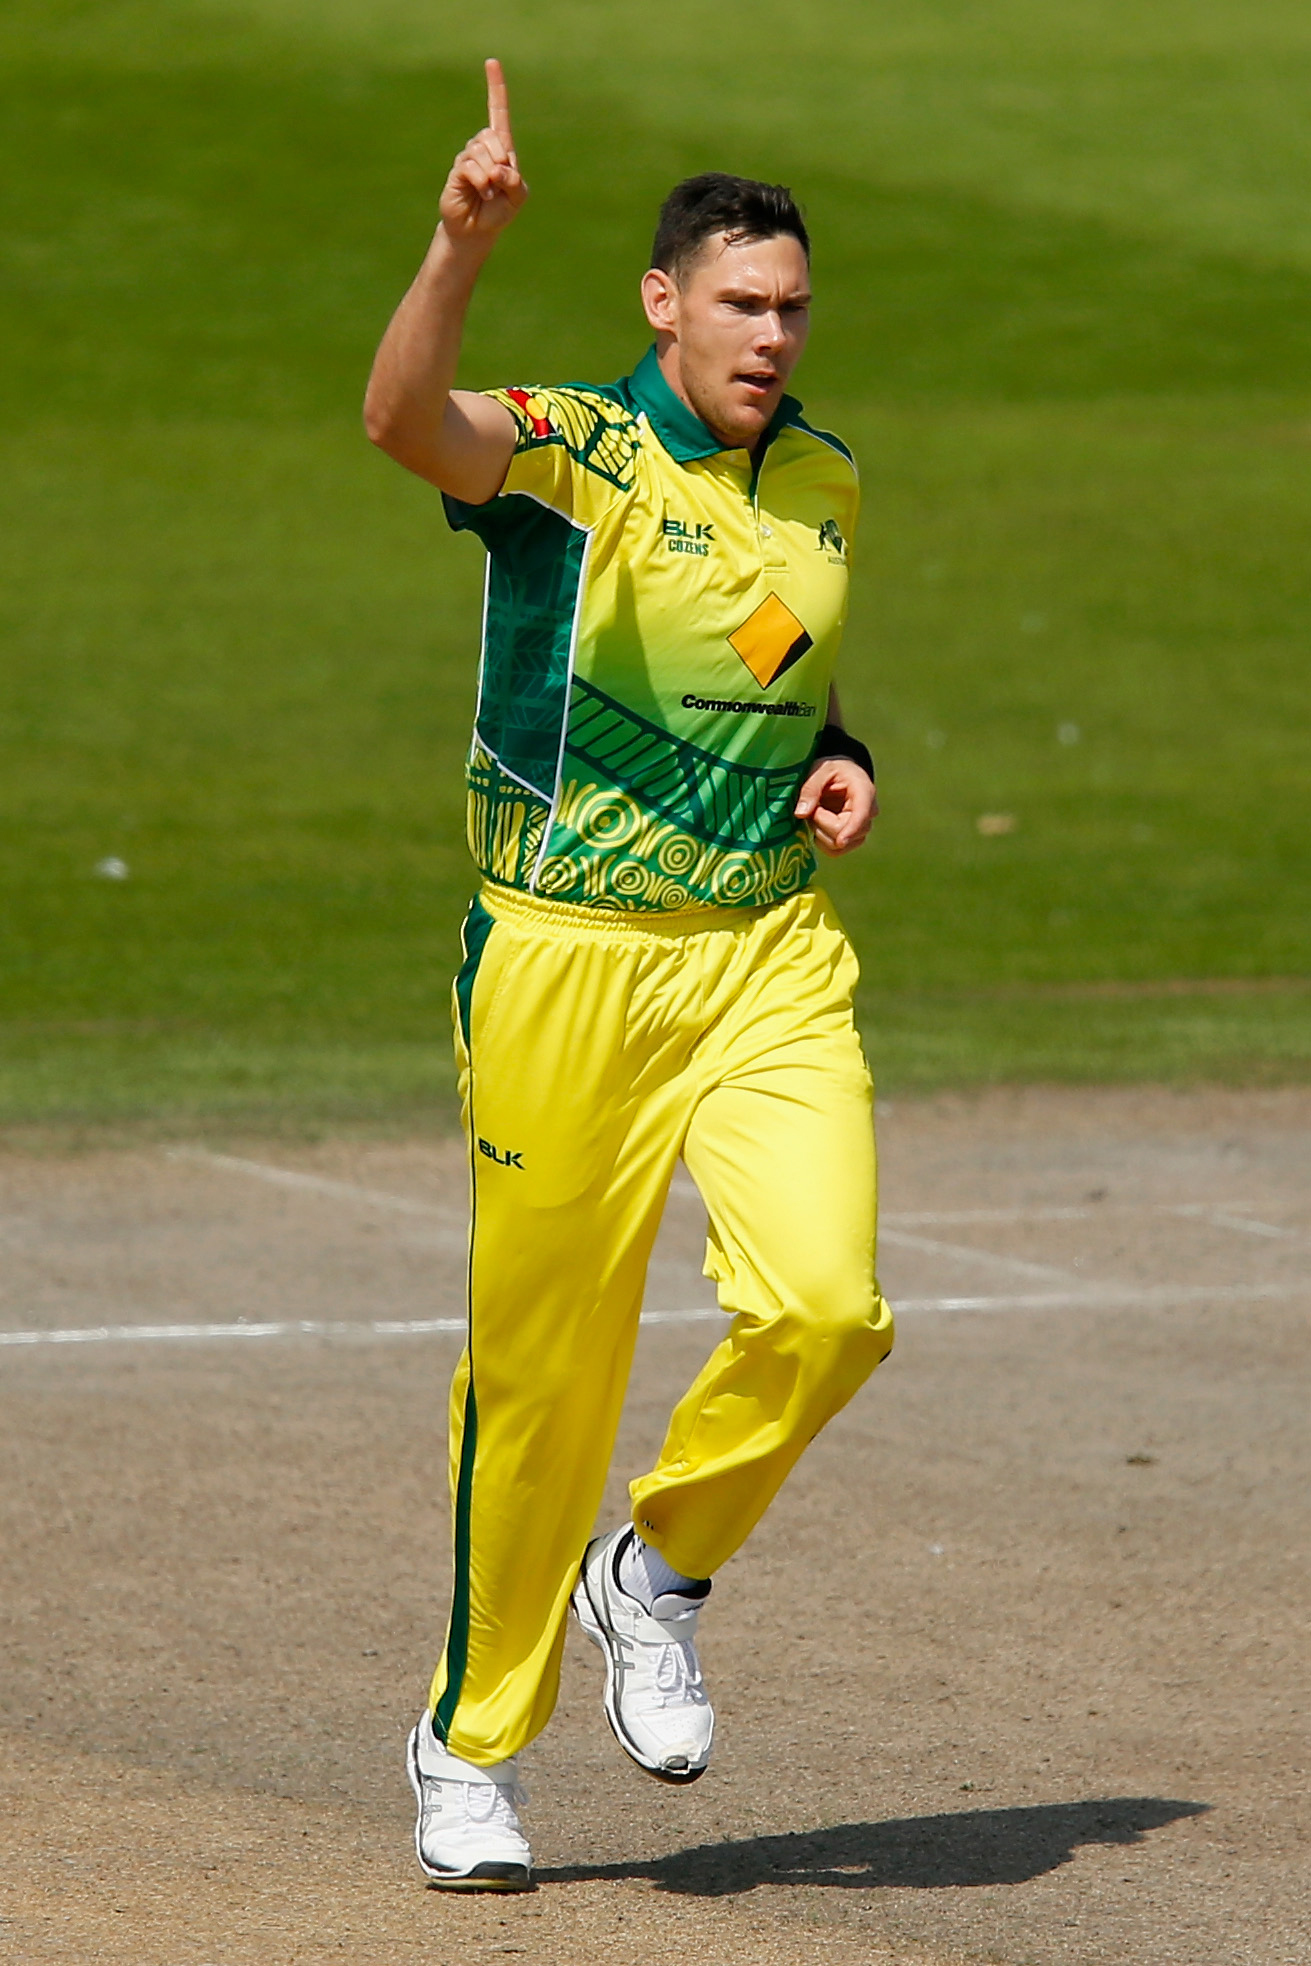 Boland celebrates an early wicket // Cricket Network